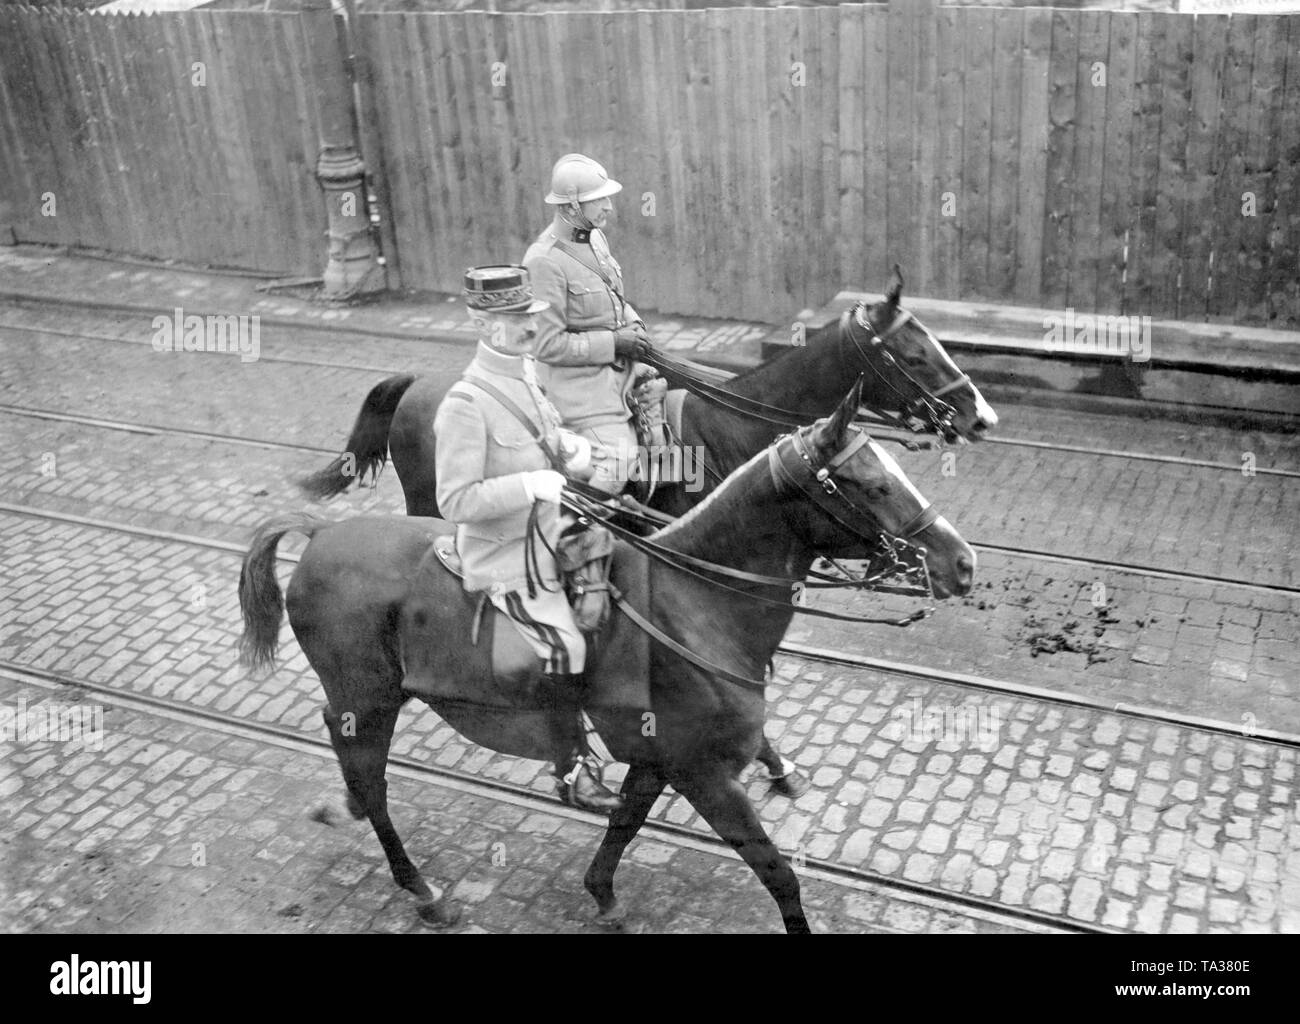 The Allied  occupation was abolished as early as 1925 in the eastern area of ??the Rhine. Here, two soldiers of the French occupation force are leaving Dusseldorf (Undated photo). - Stock Image